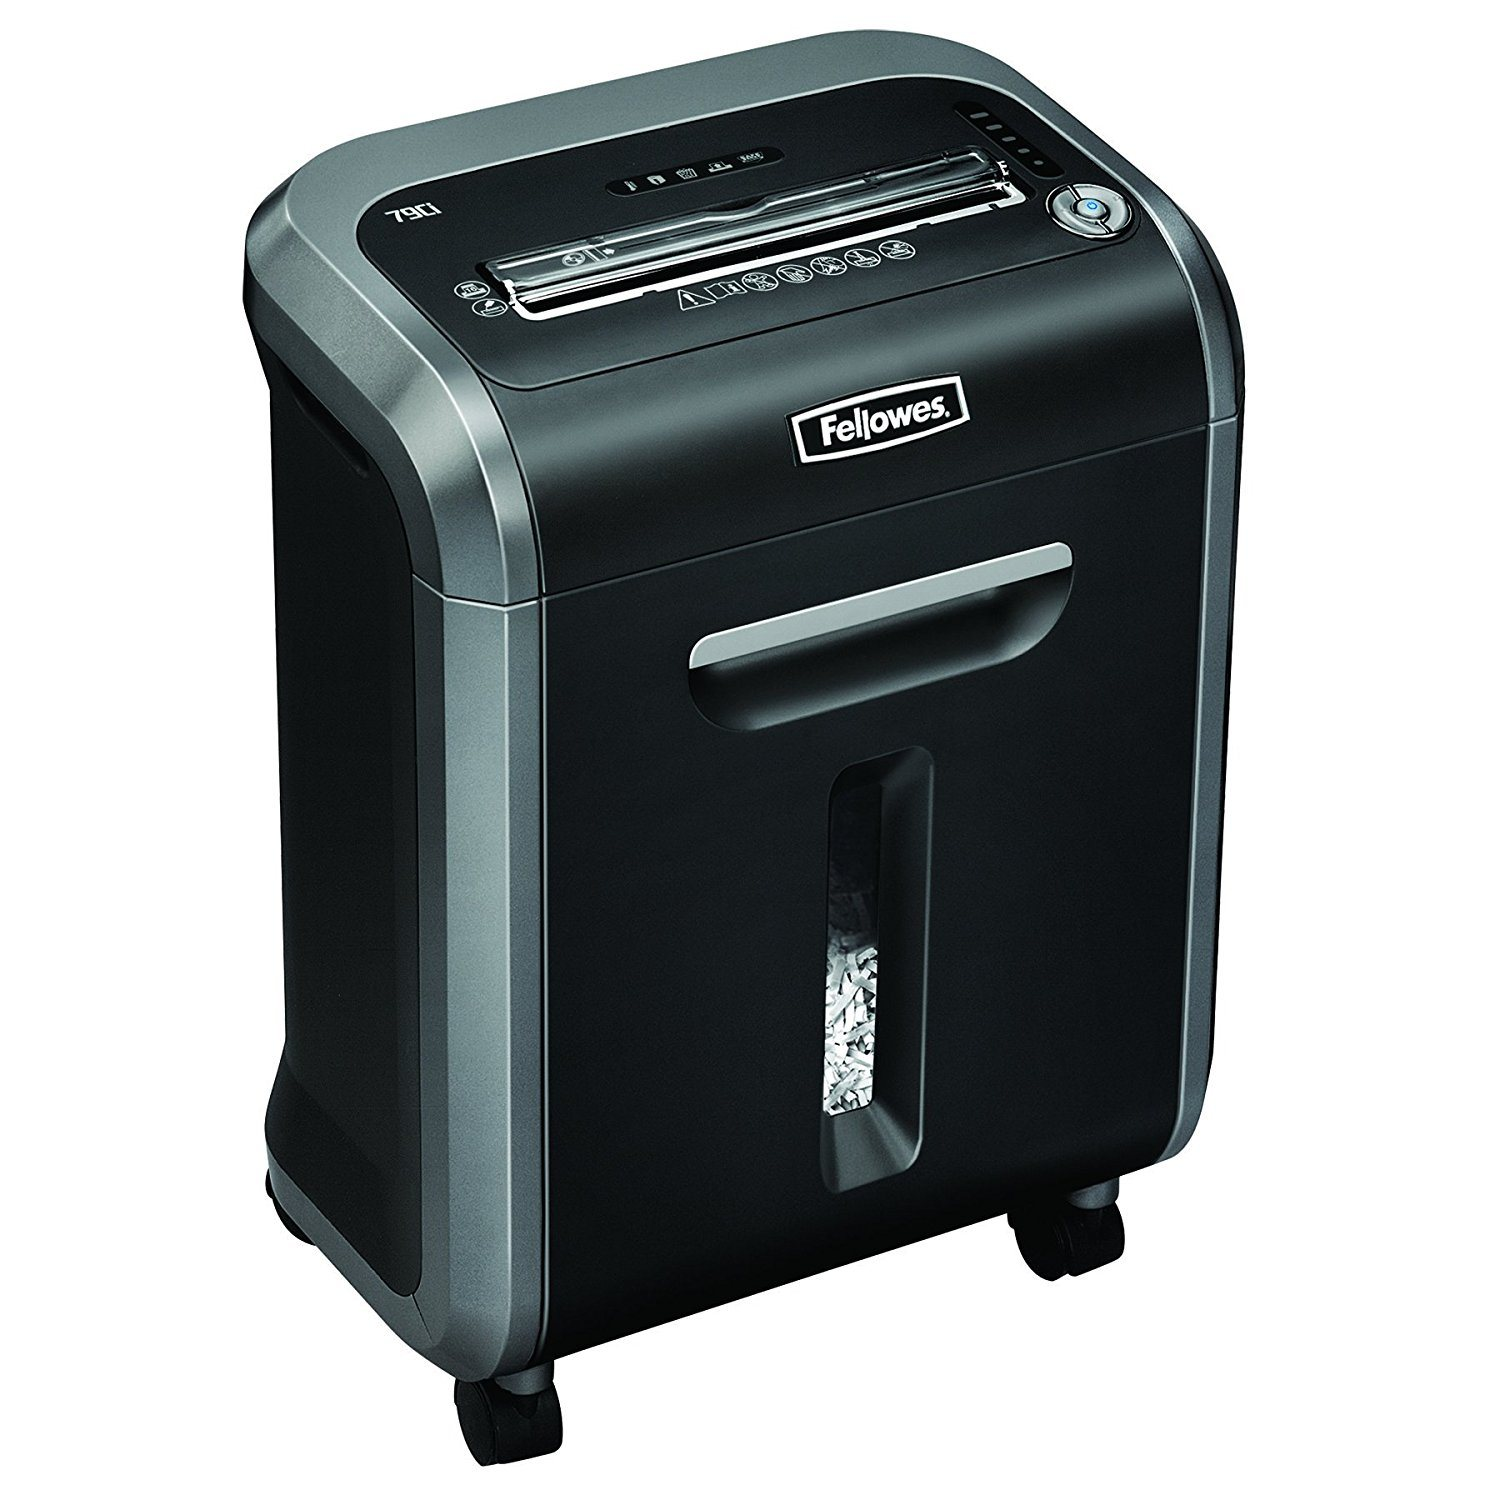 destructeur de documents Fellowes 79ci